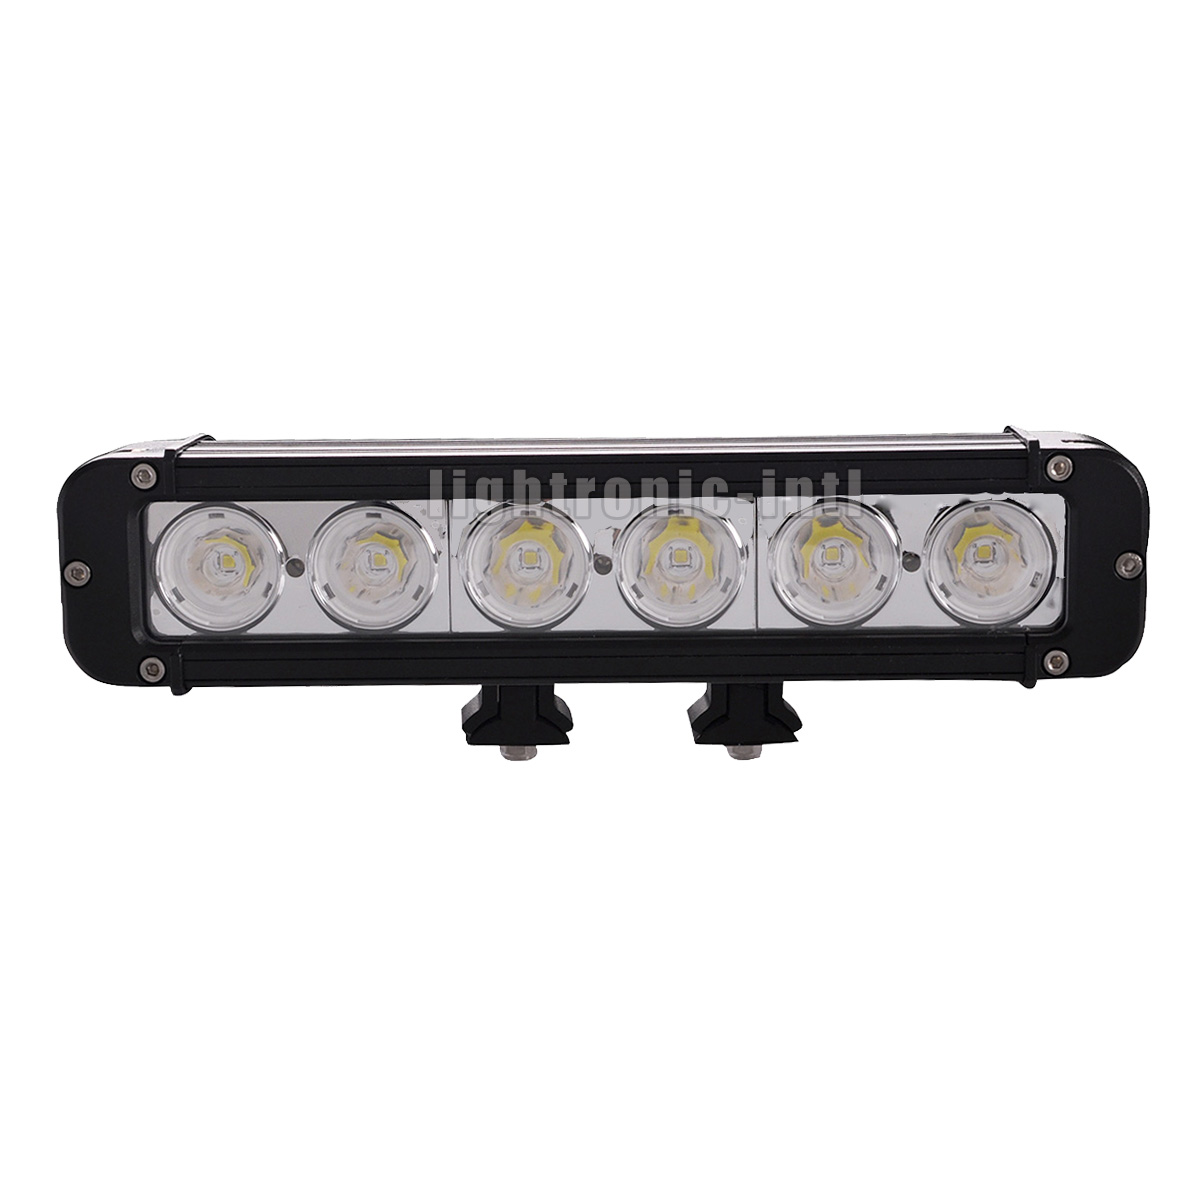 11inch 60w cree led single row work light bar spot offroad. Black Bedroom Furniture Sets. Home Design Ideas